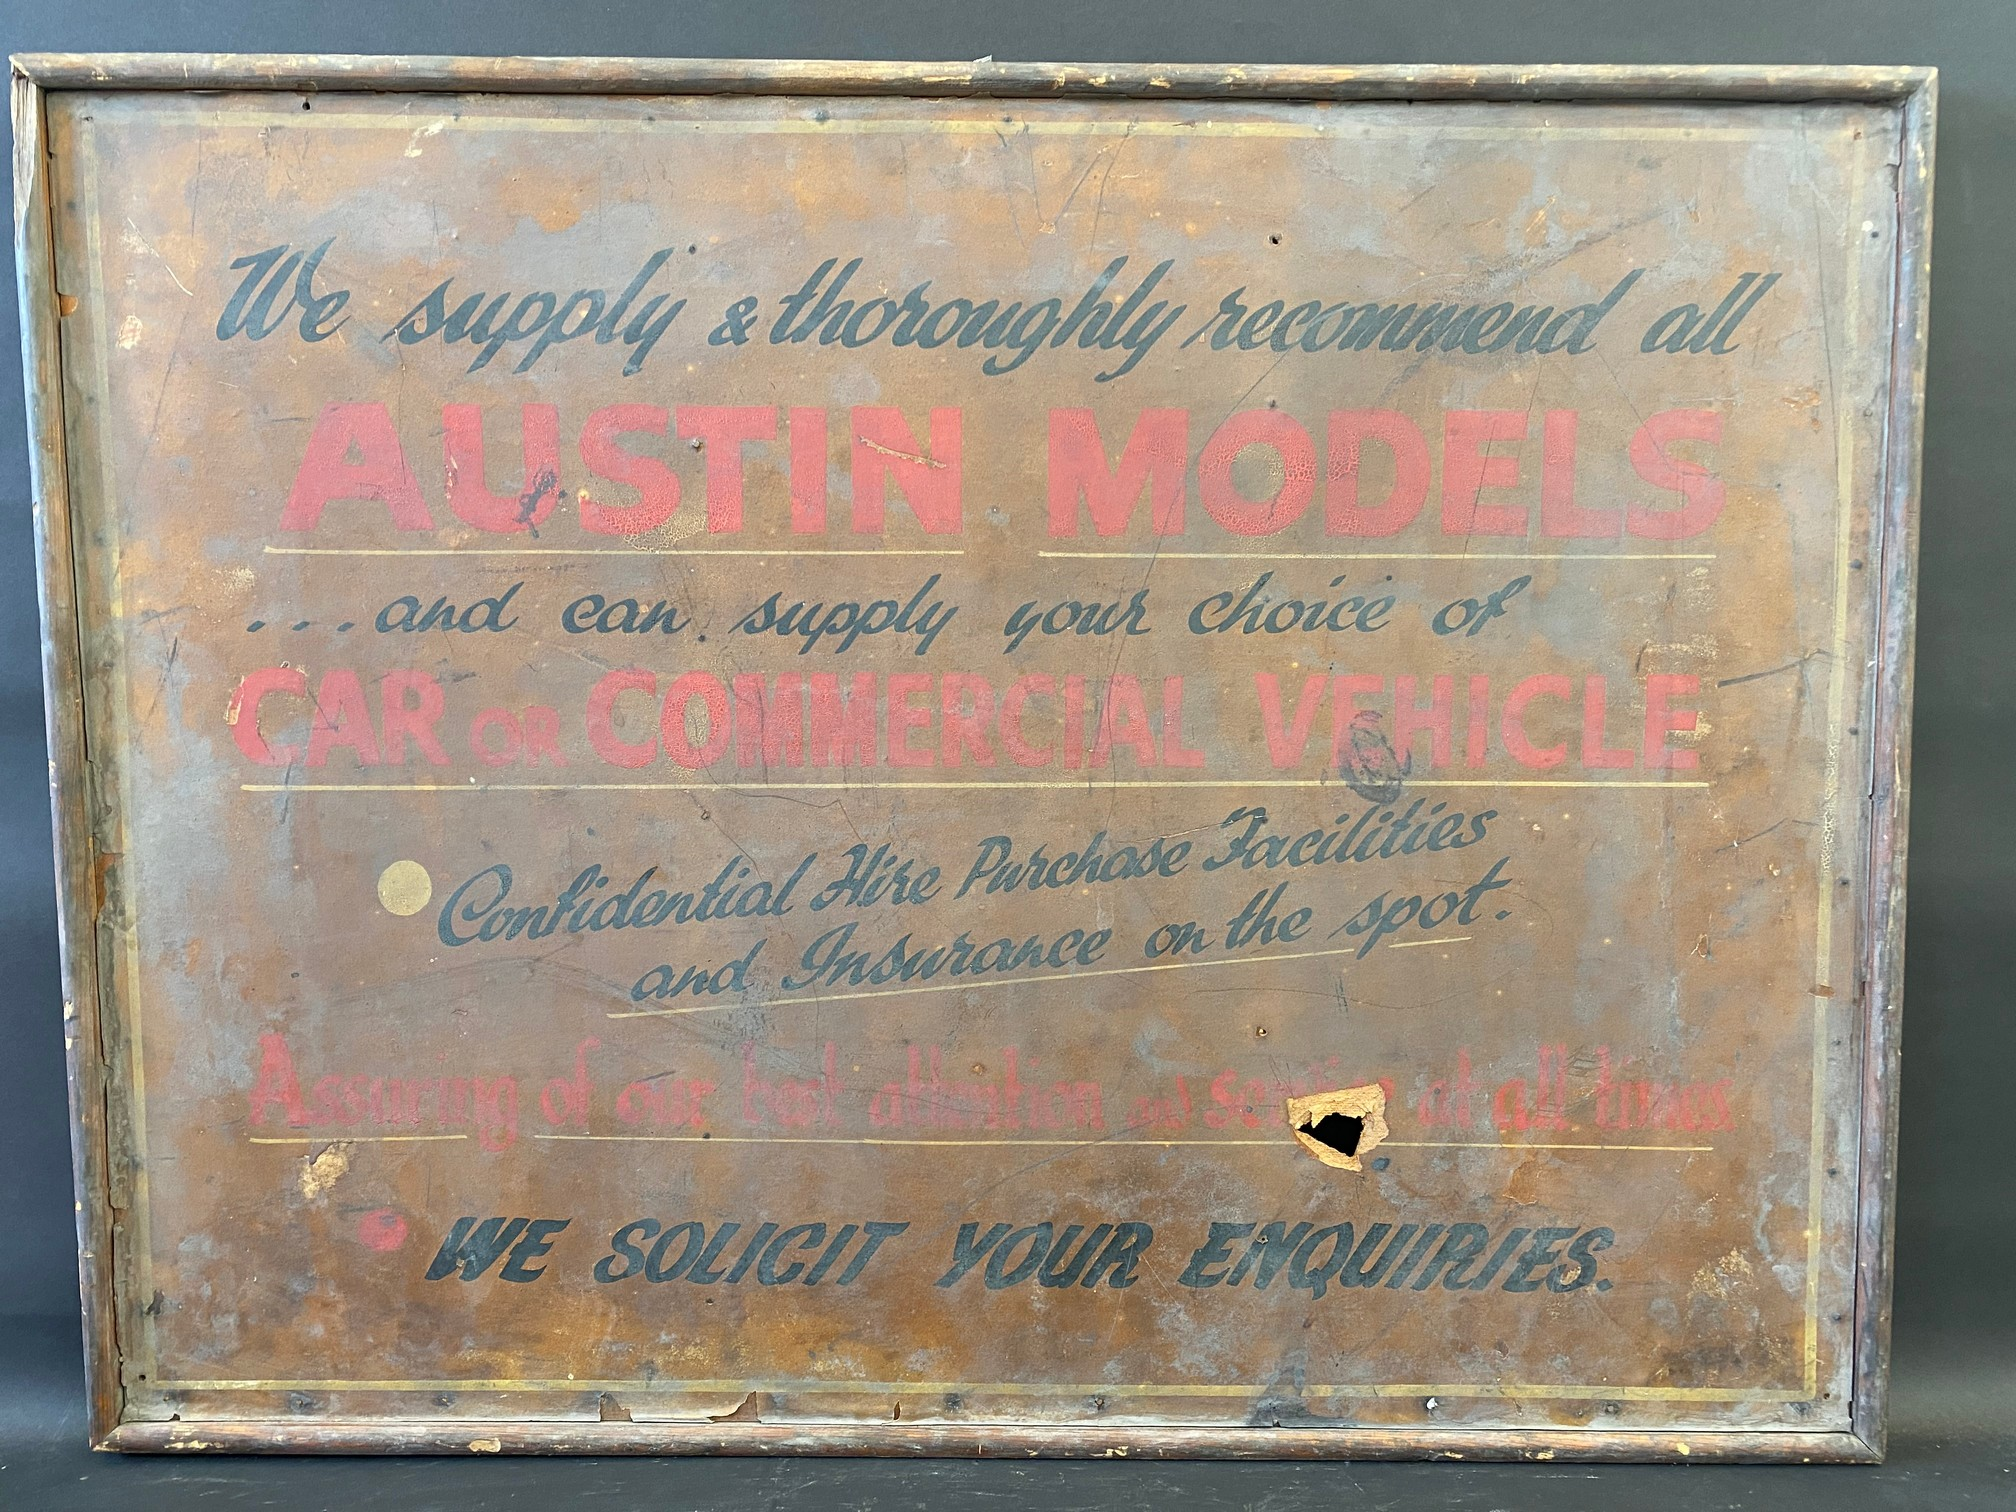 An early garage wooden framed advertising sign for Austin models, car or commercial (recently